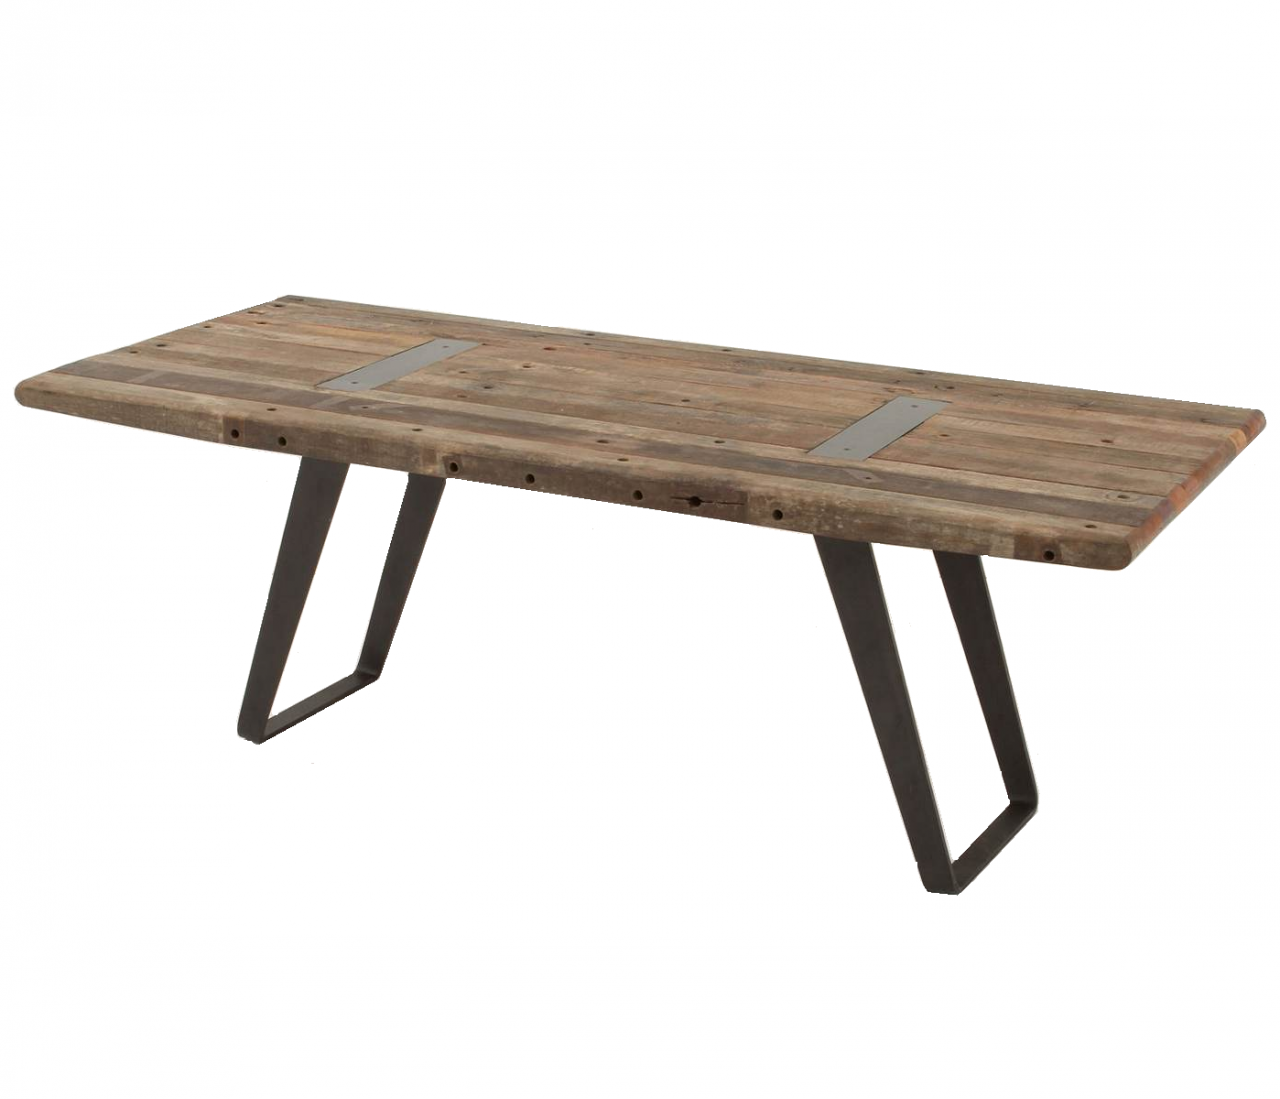 Industrial reclaimed wood dining table 85 zin home blog for Best wood for dining table